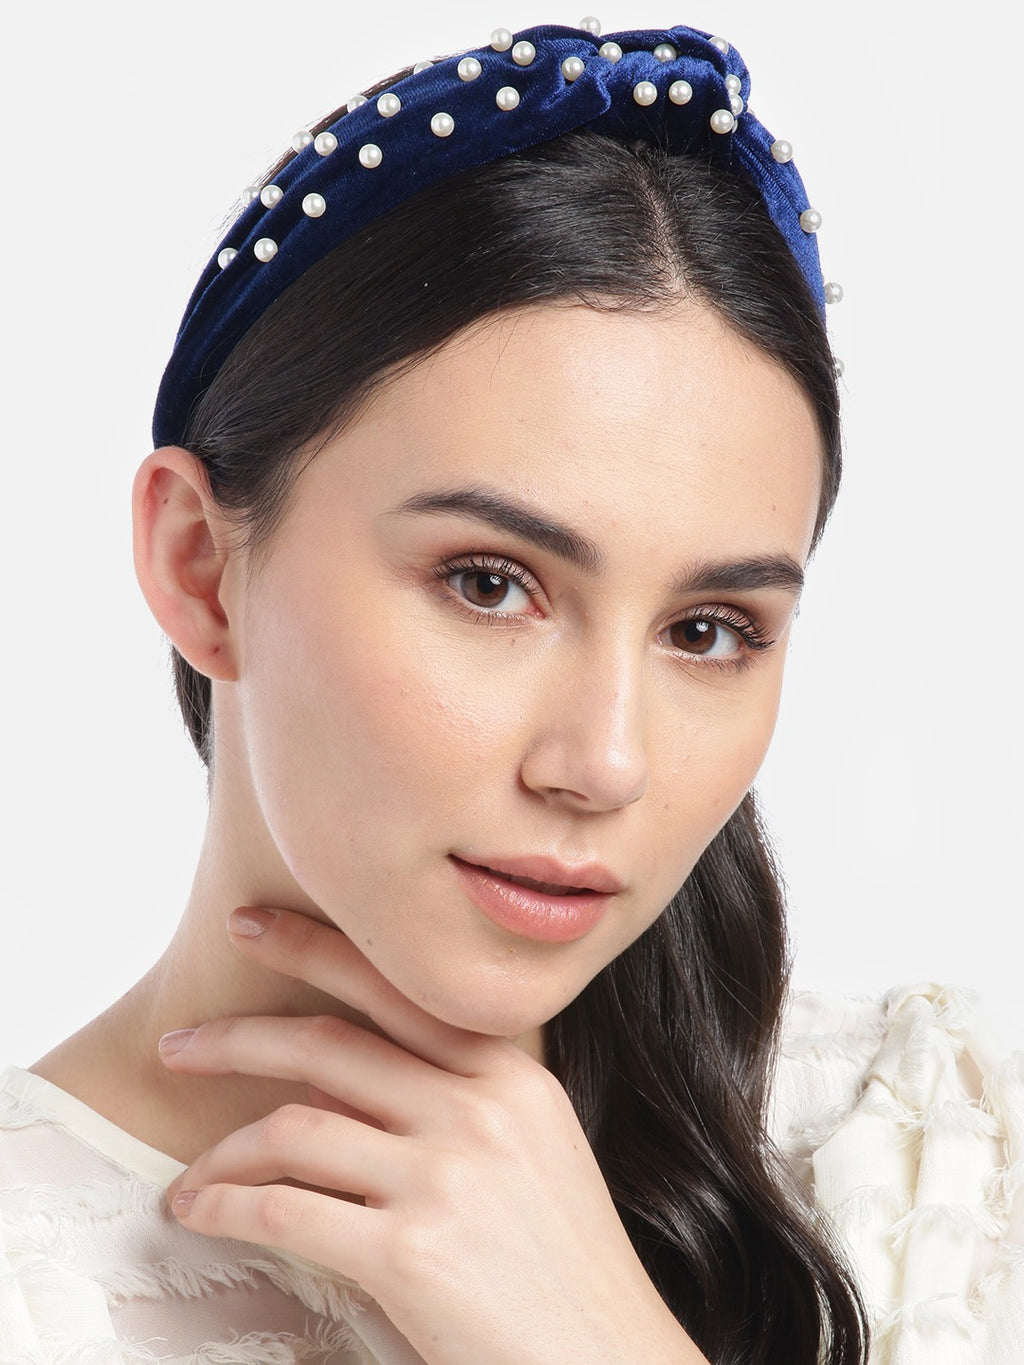 Blueberry princess pearl embellished navy blue velvet knot hair band